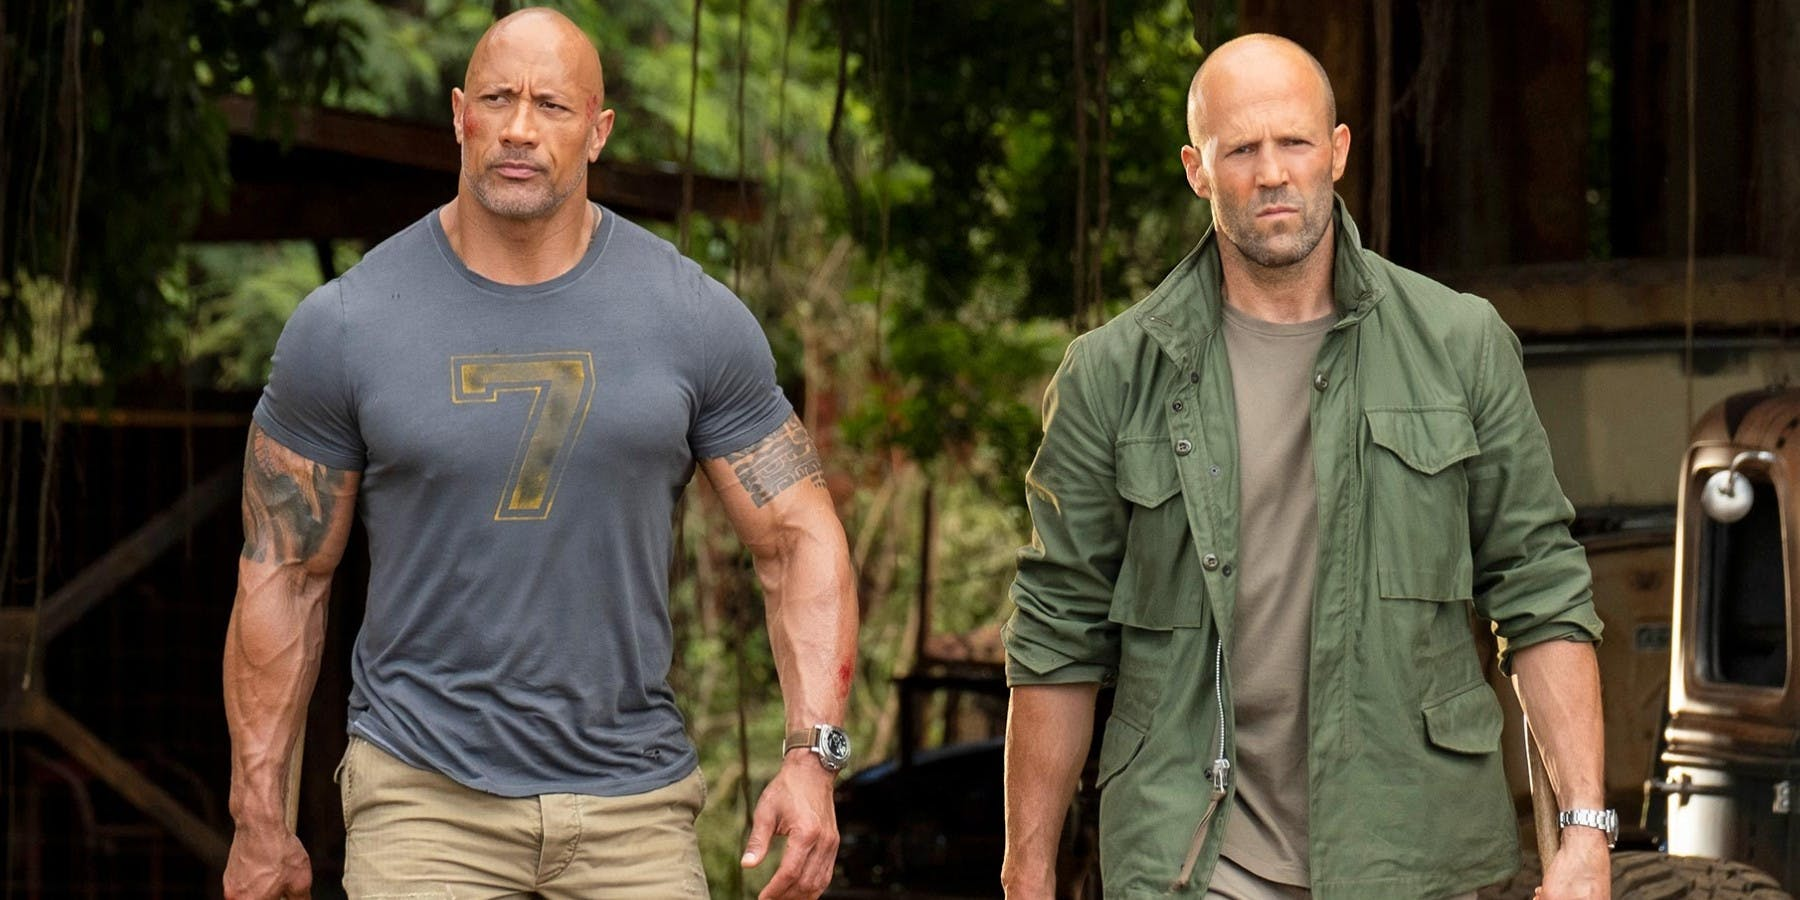 Dwayne-Johnson-and-Jason-Statham-in-Hobbs-and-Shaw